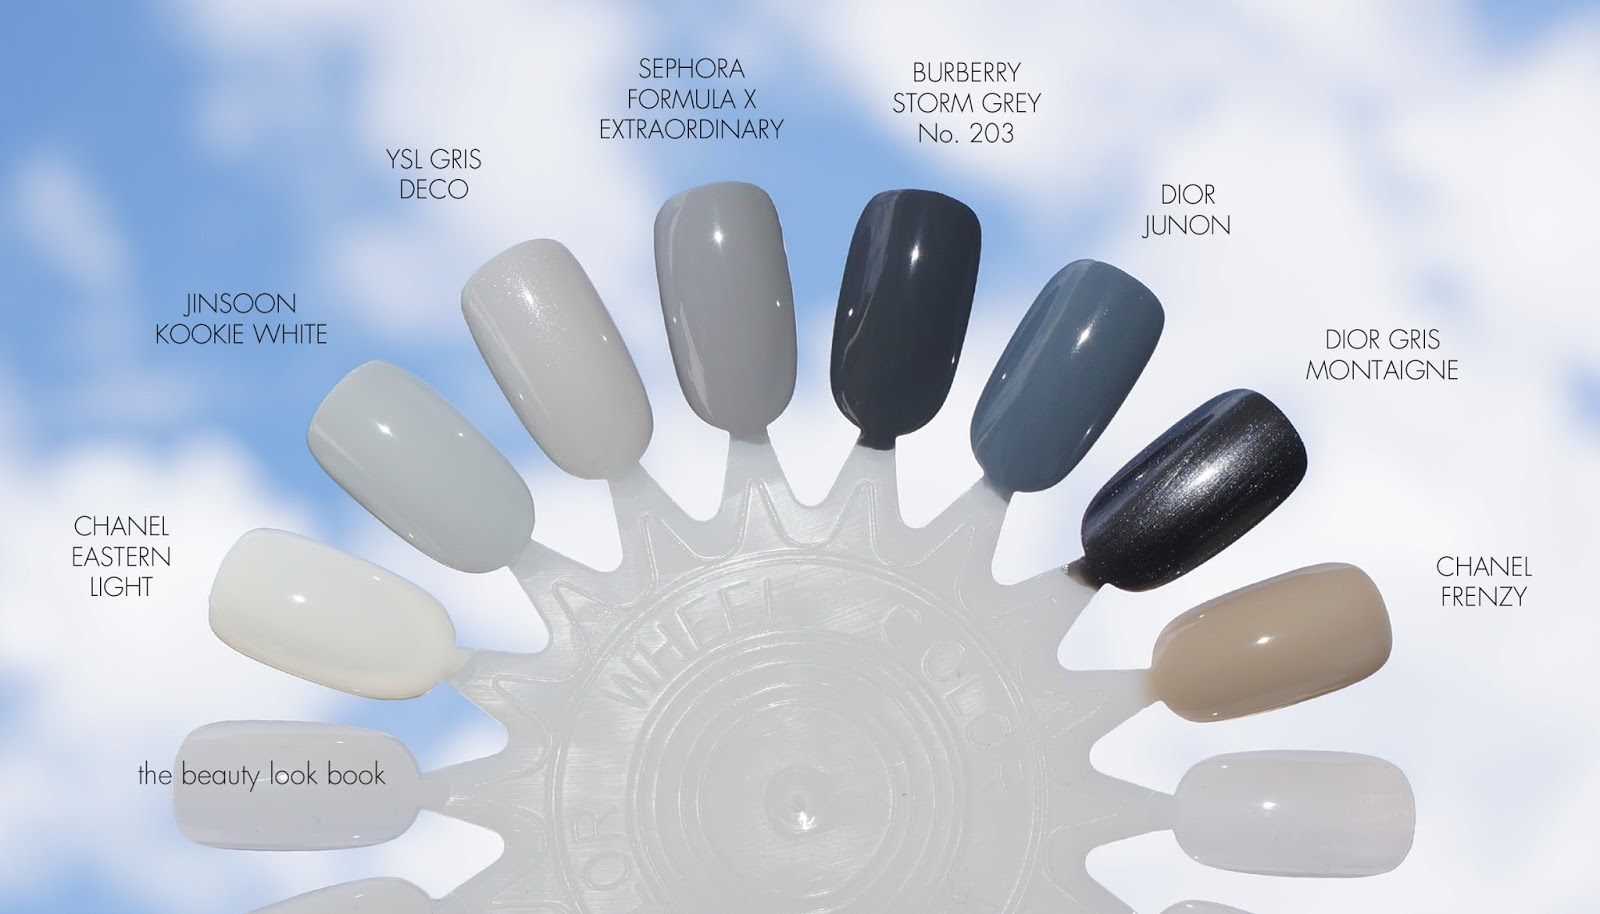 7 Shades of Grey Nail Lacquer | The Beauty Look Book